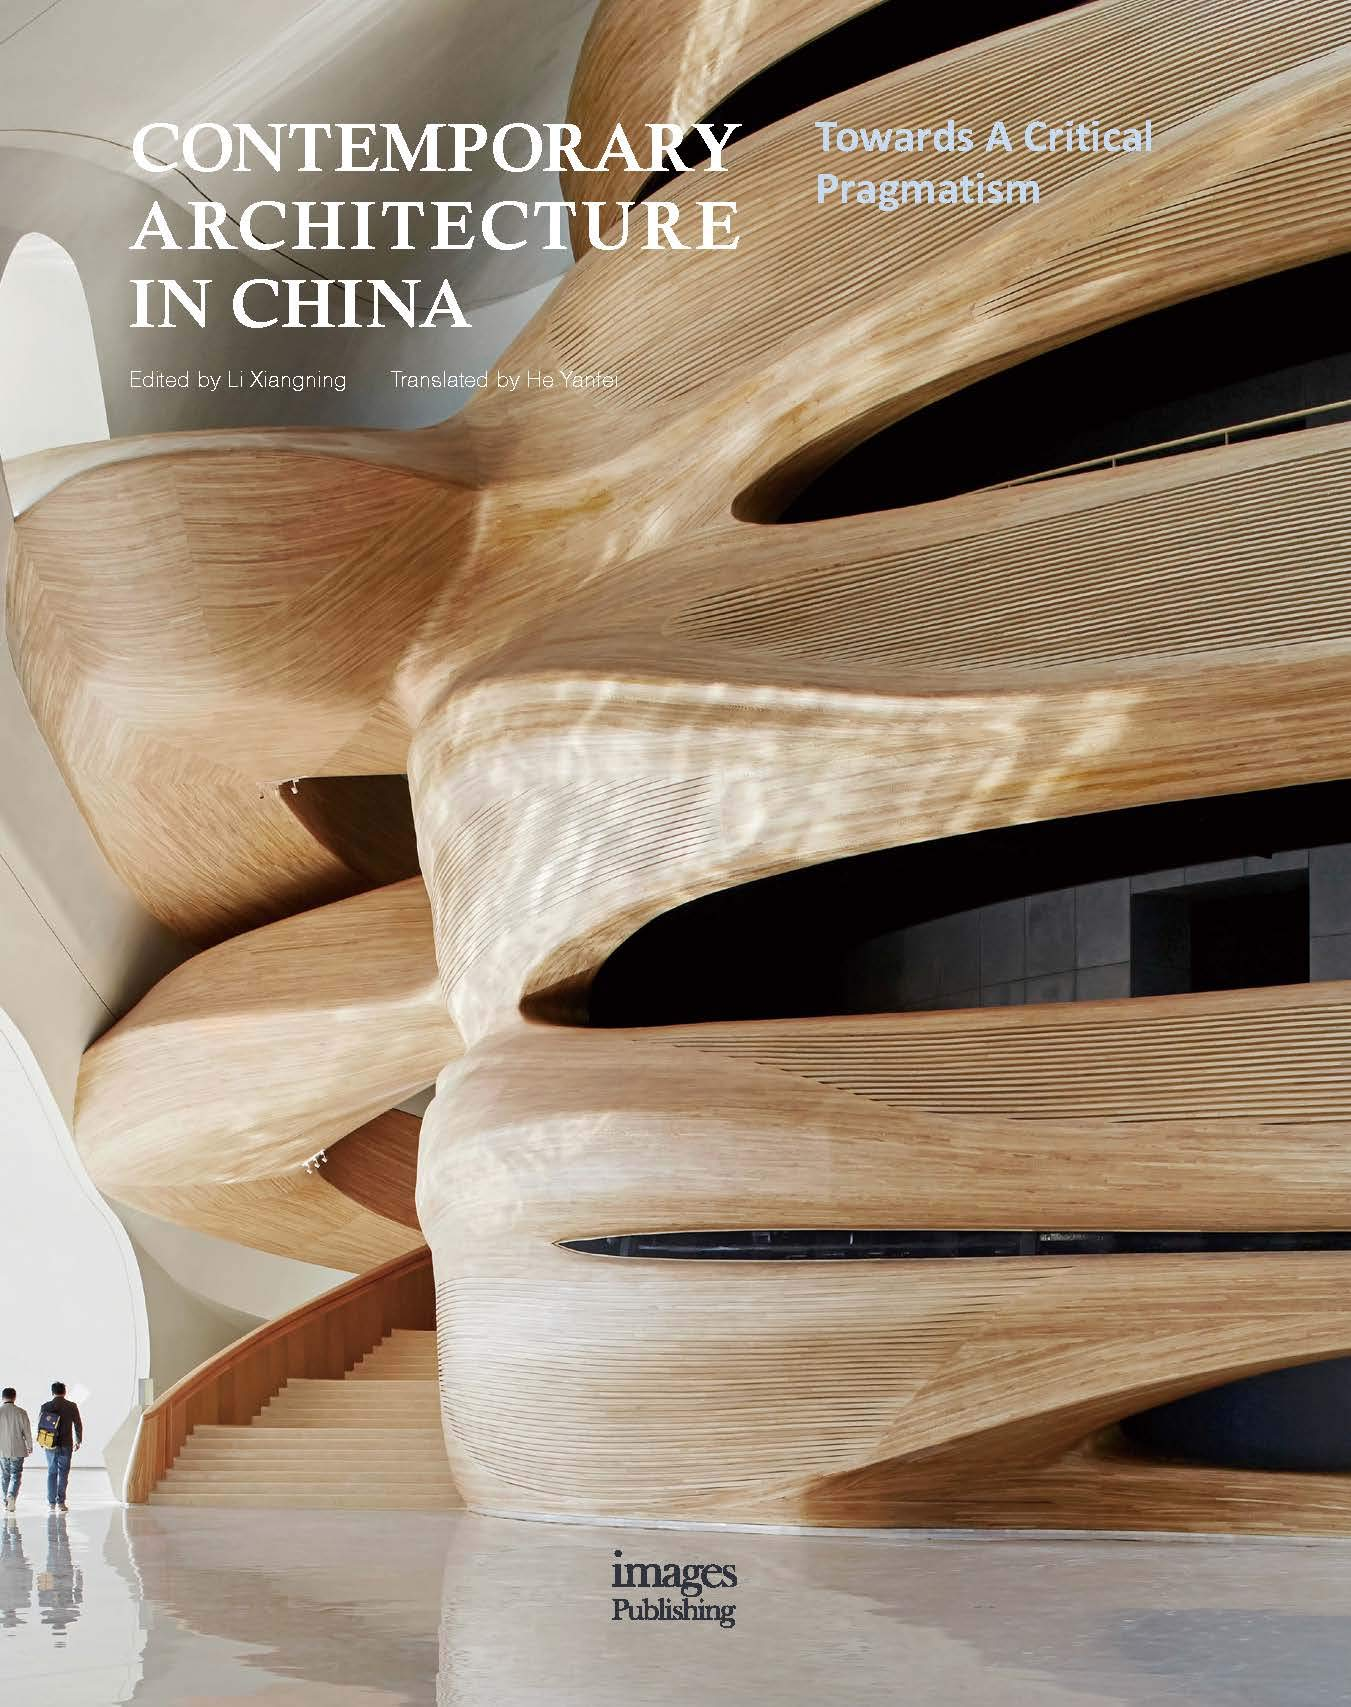 Contemporary Architecture In China  Towards A Critical Pragmatism